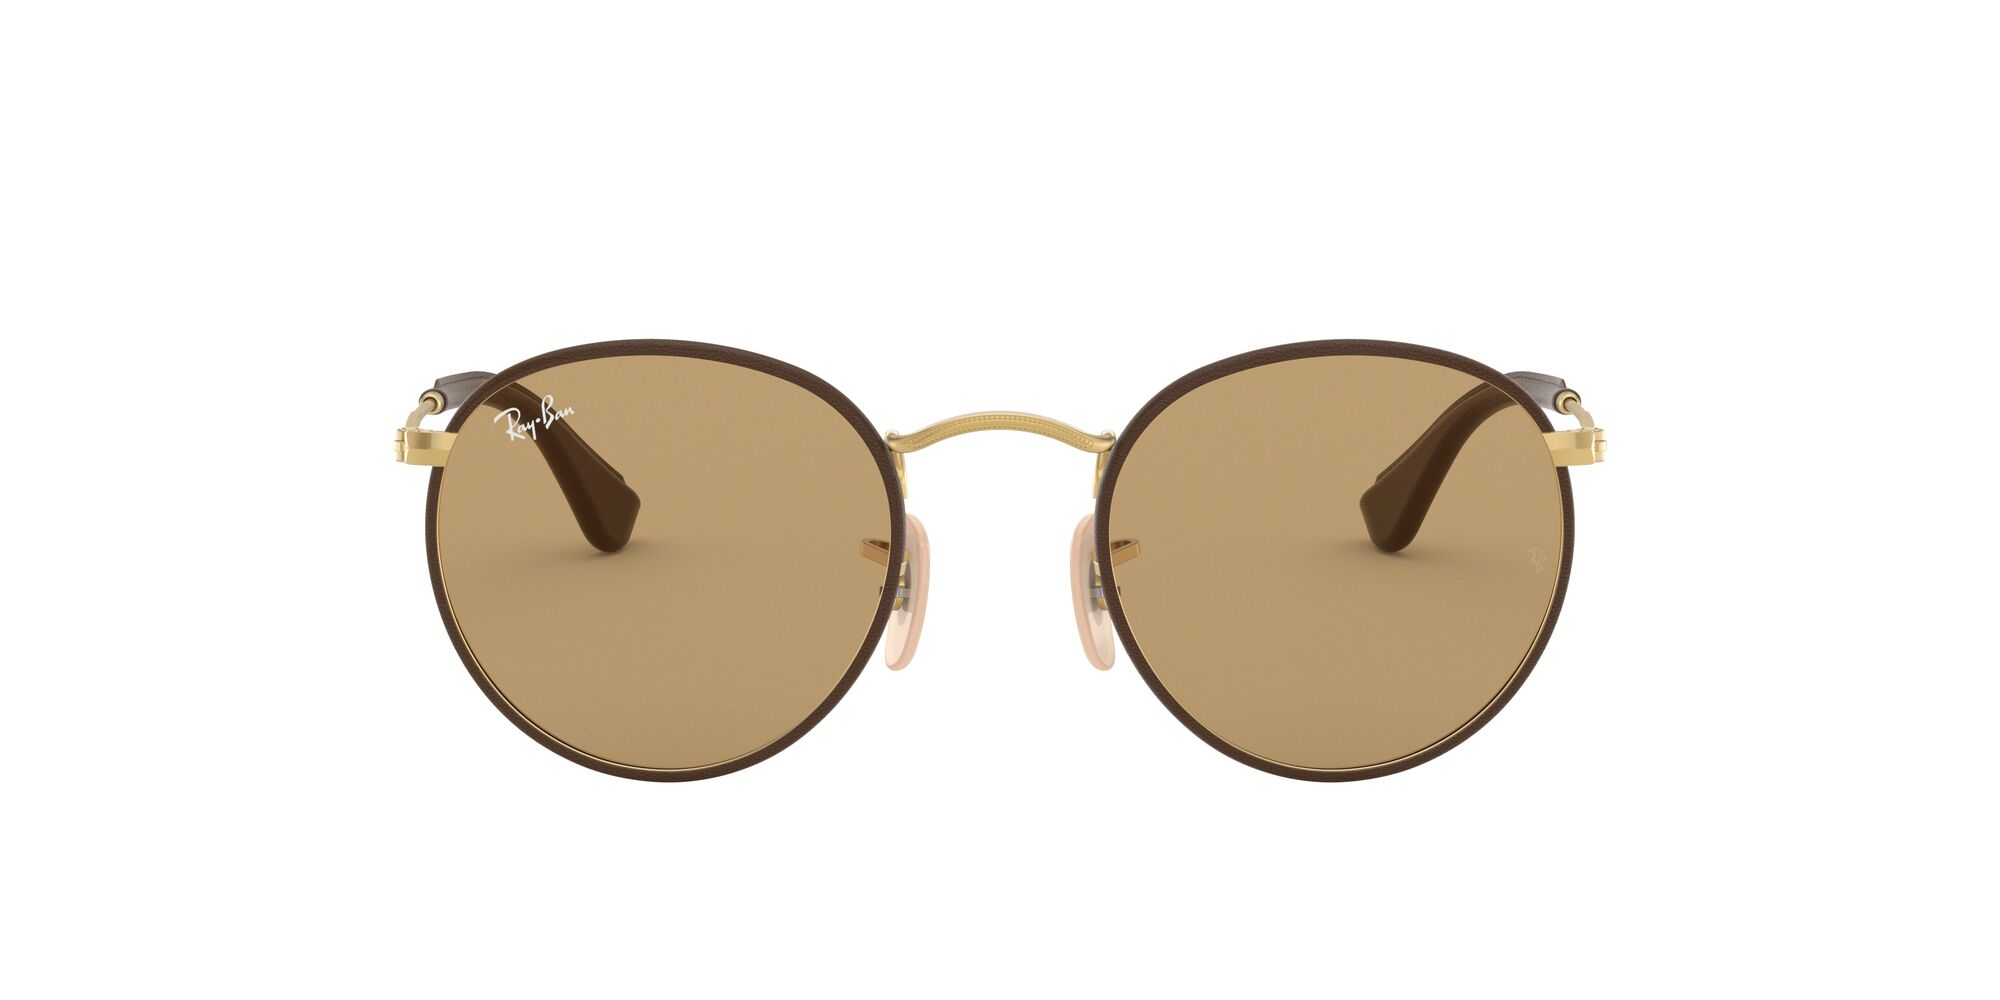 Front Ray-Ban Ray-Ban 0RB3475Q 112/53 50/21 Goud/Bruin